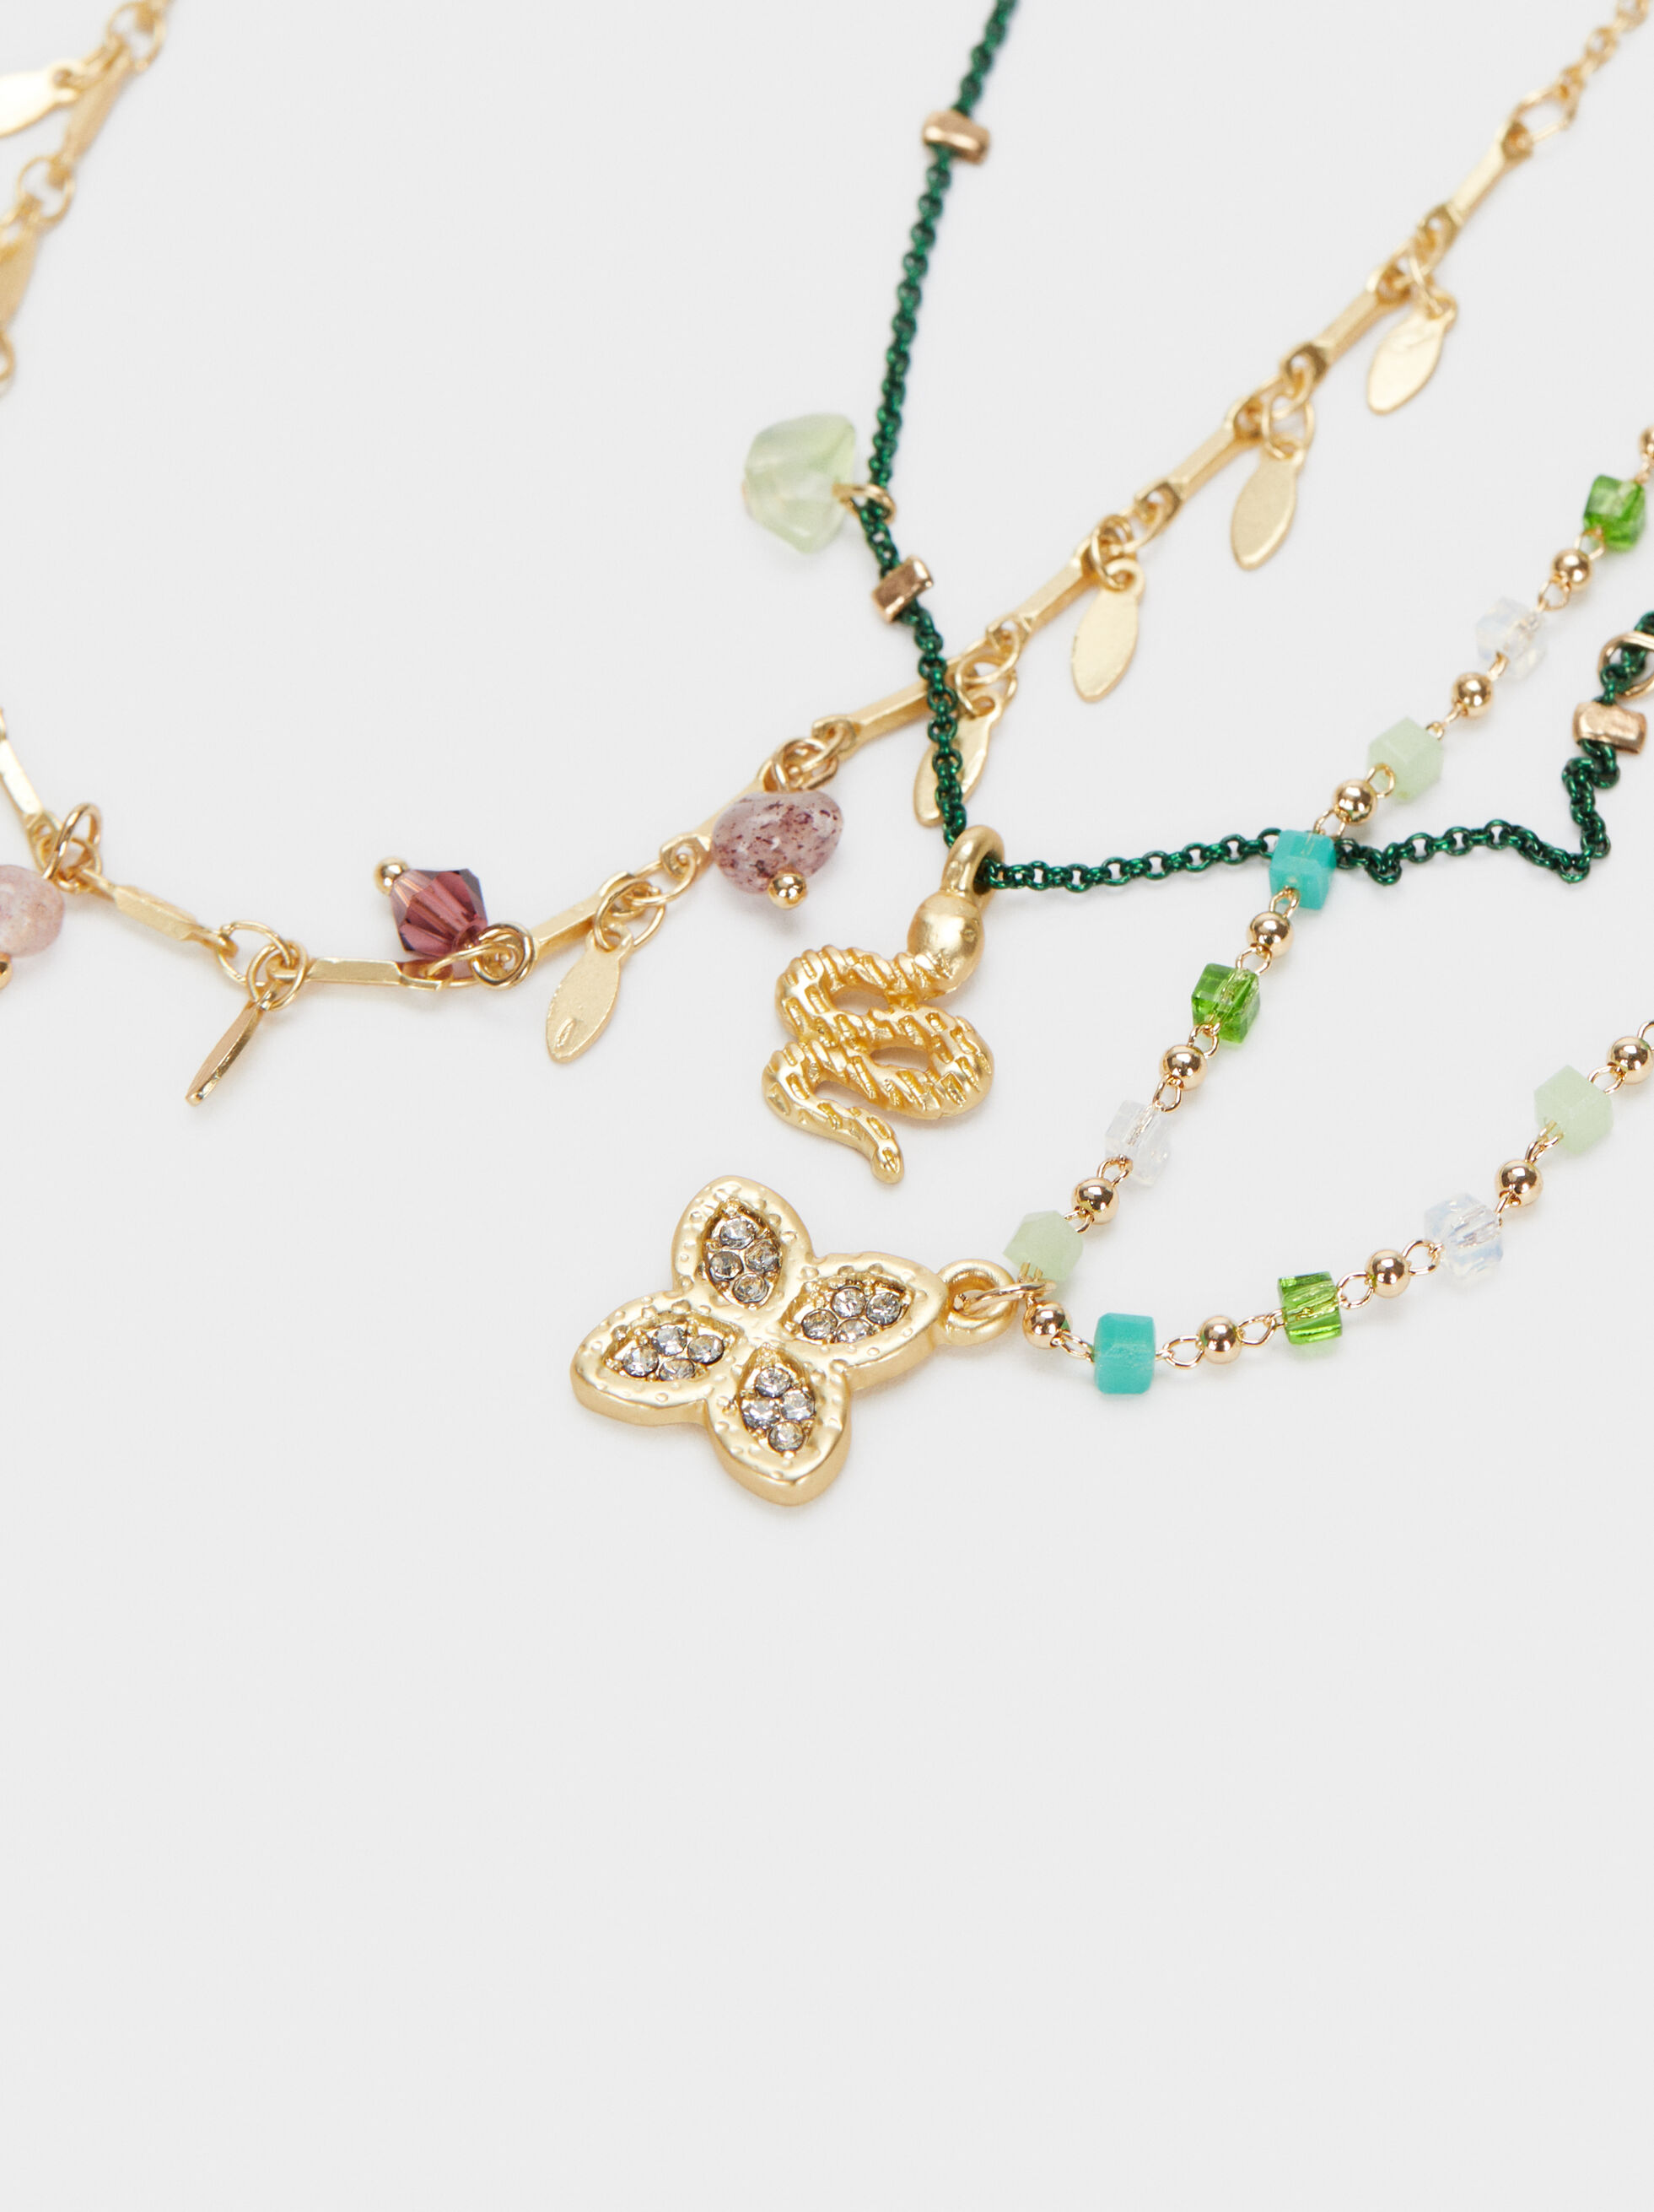 Set Of Necklaces With Stones And Charms, Multicolor, hi-res